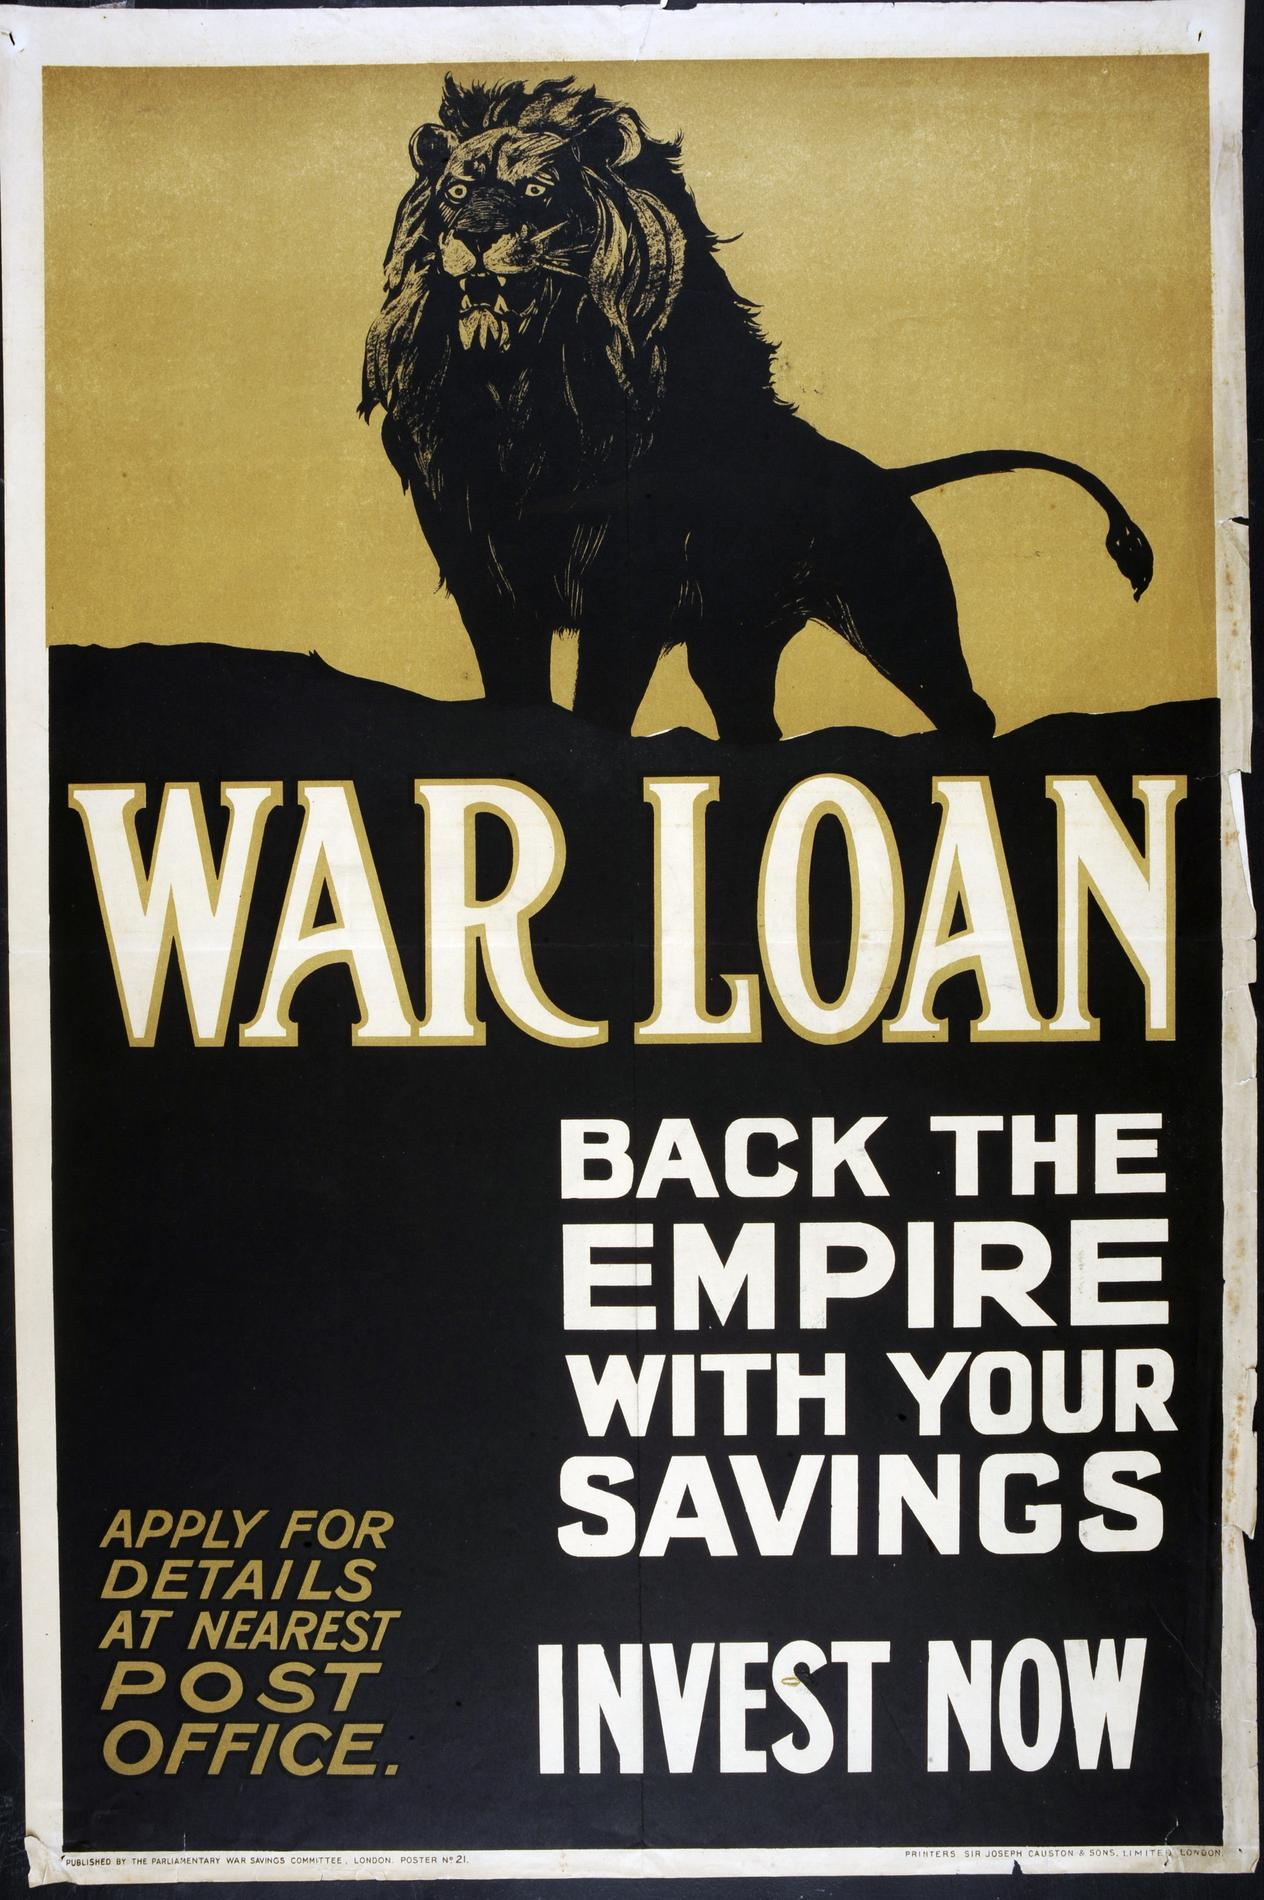 War Loan. Back the empire with your savings. Invest now (Poster)